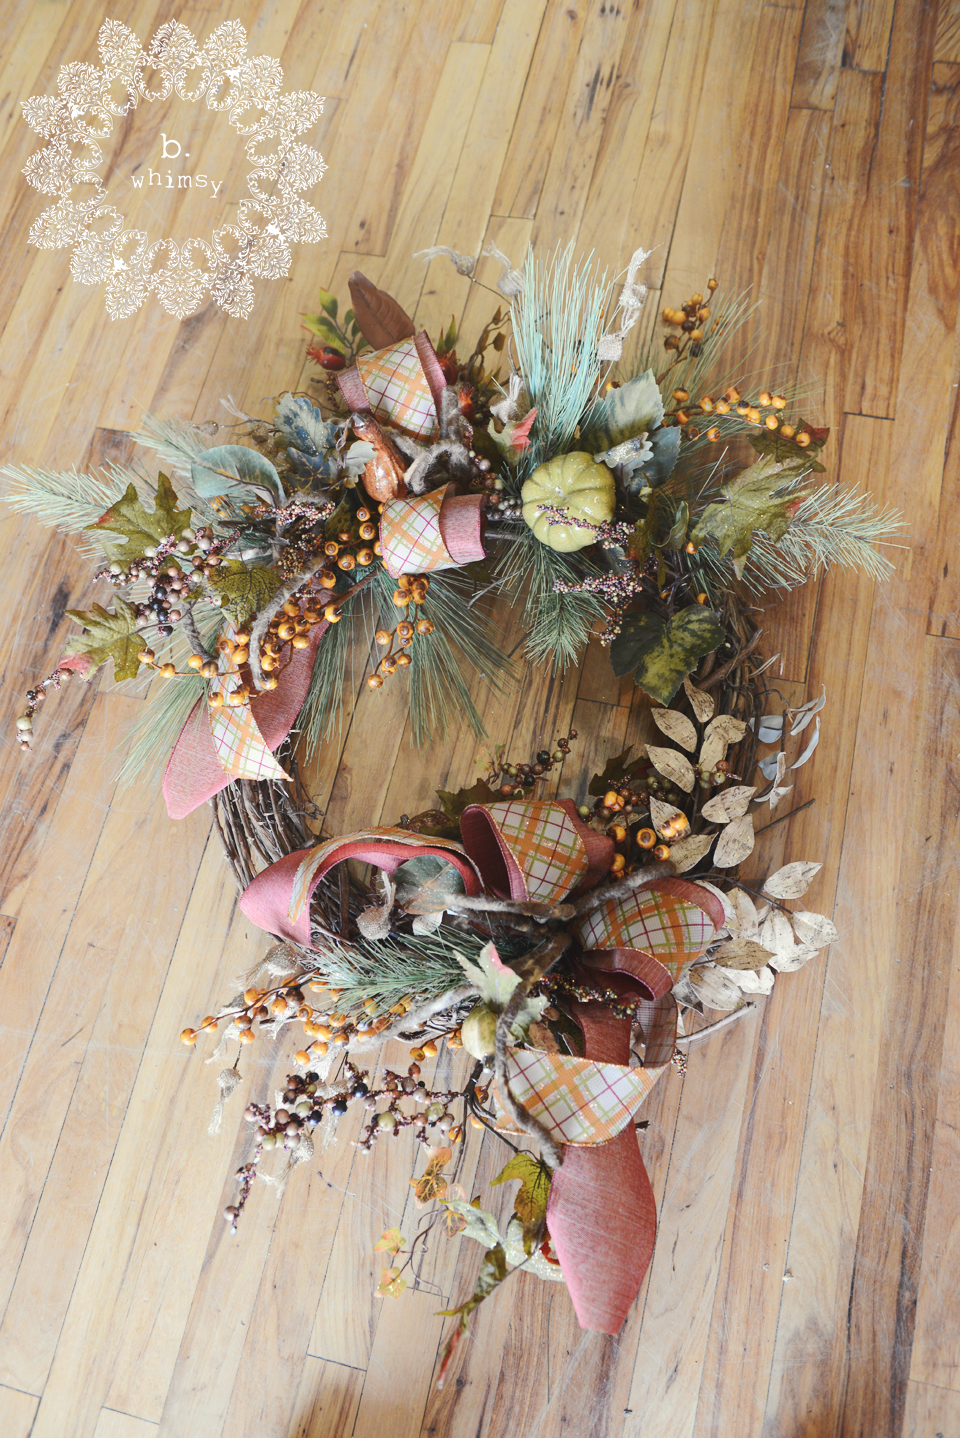 Fall Florals by B. Whimsy